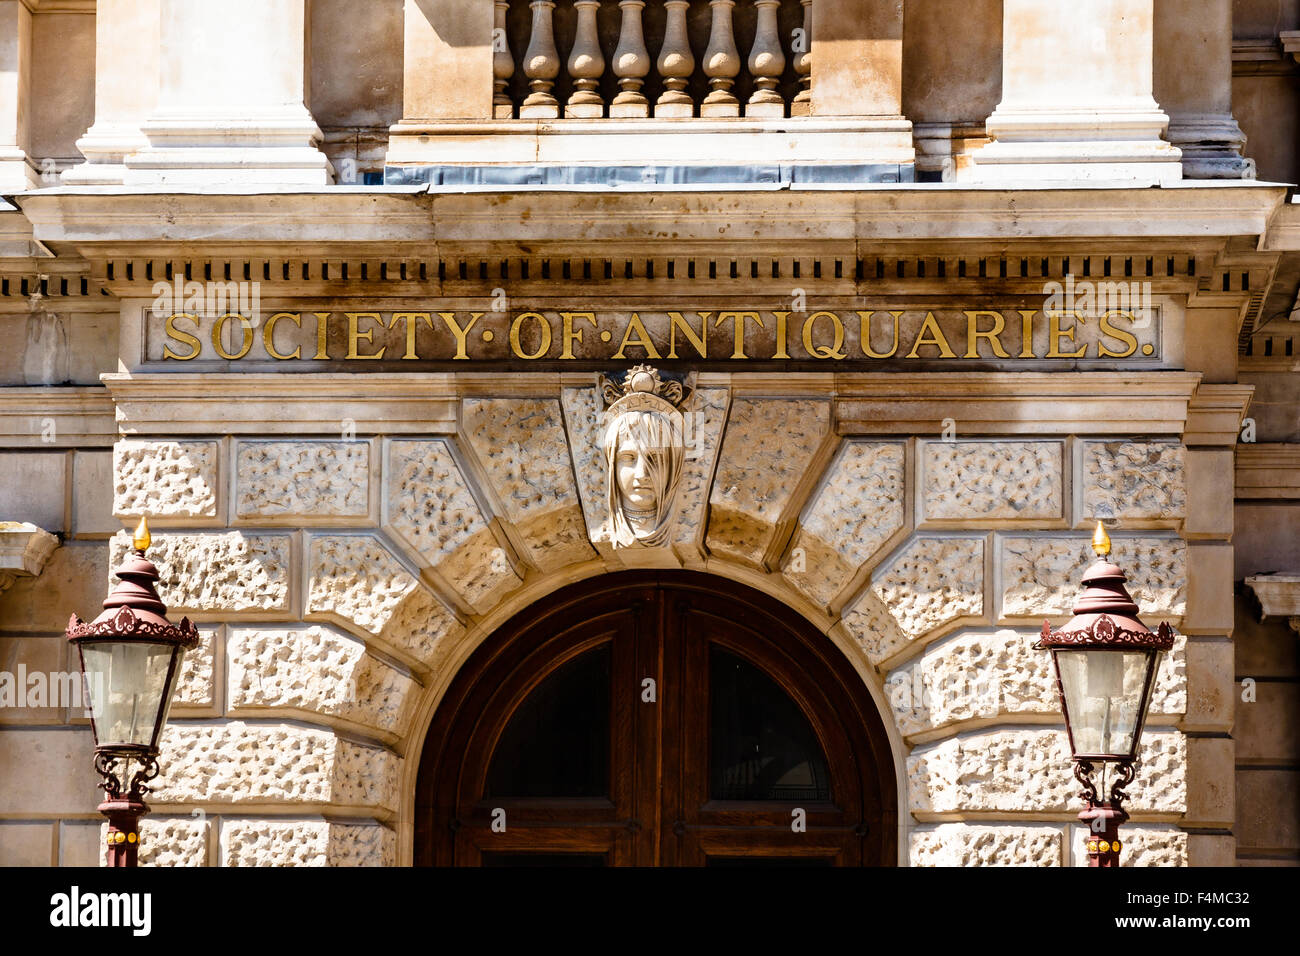 Doorway of Society of Antiquaries at Royal Academy of Arts, RAA, Burlington House, Piccadilly, London, England, - Stock Image